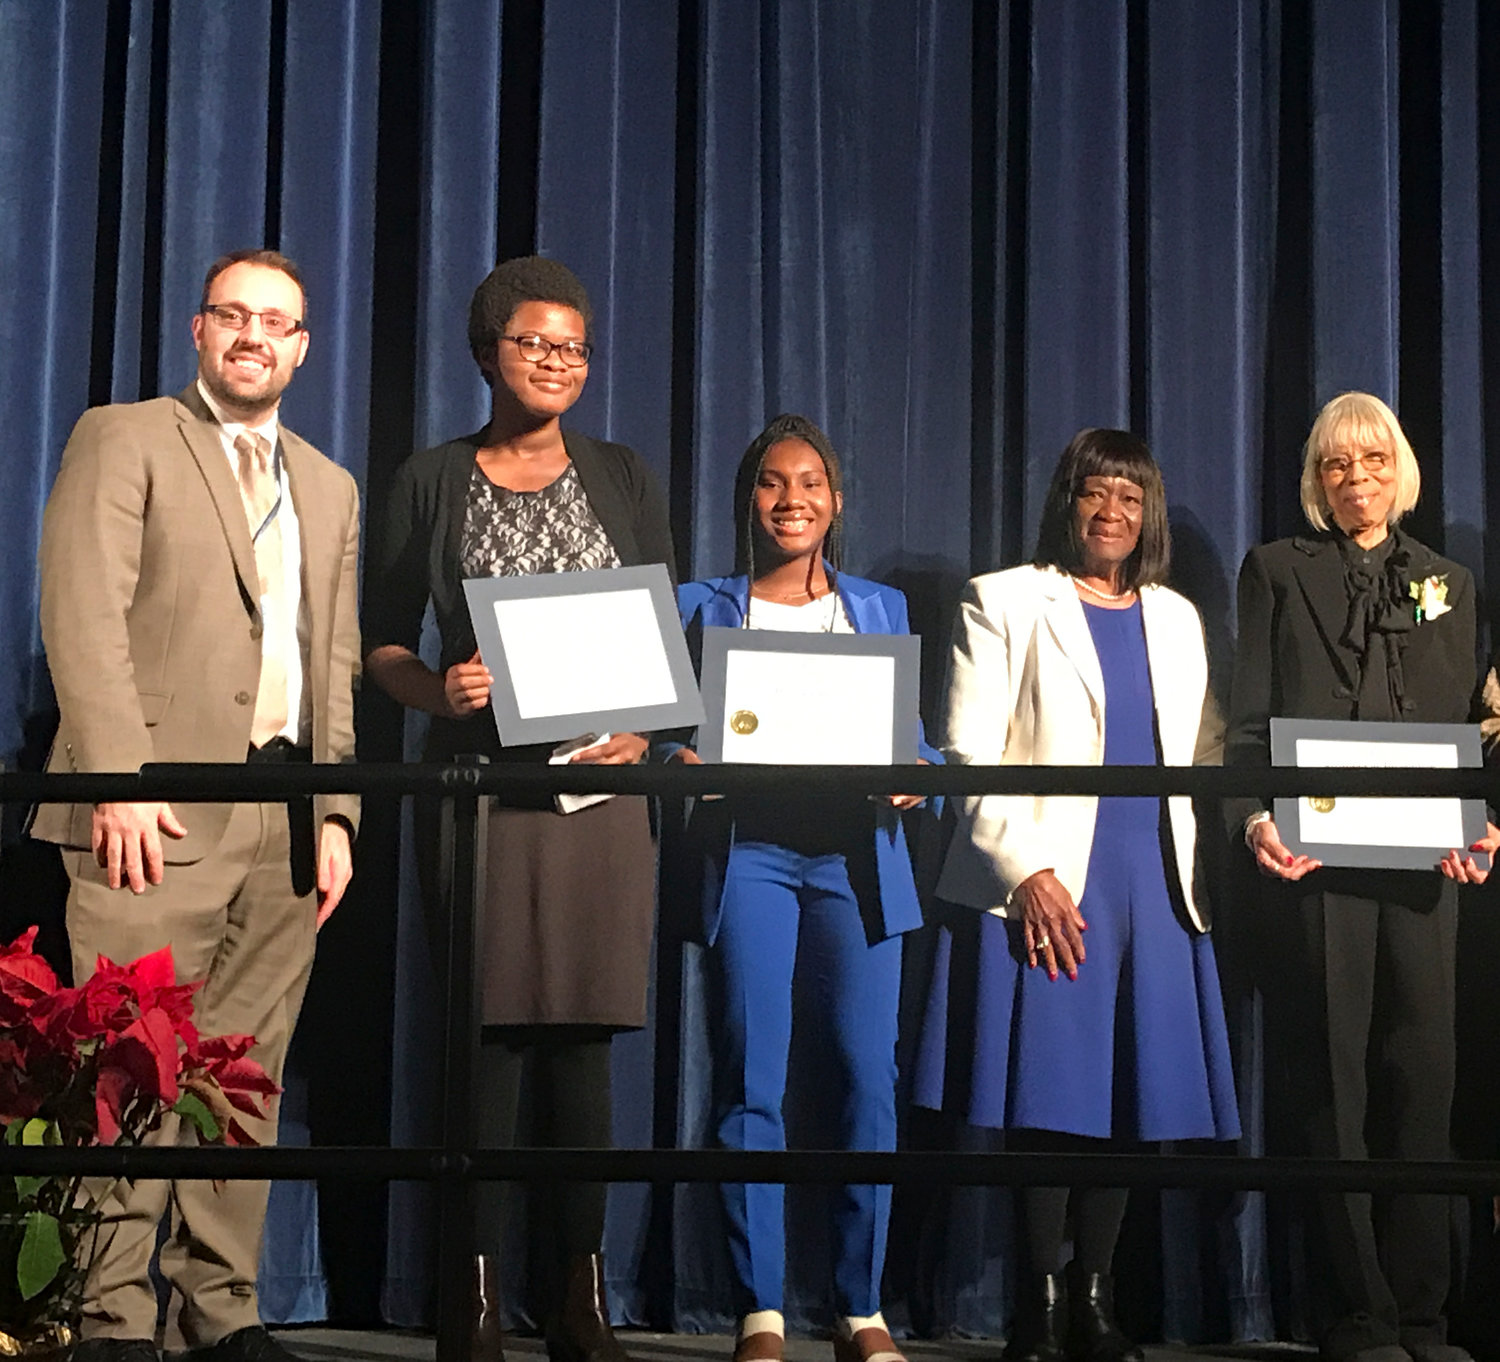 Baldwin students Reyna Palmer, second from left, and Moni Aderemi were presented with the Humanitarian Award, joined by Baldwin High School Principal Dr. Neil Testa, Hempstead Town Councilwoman Dorothy Goosby and Concerned Parents of Baldwin member Sharon Ball.